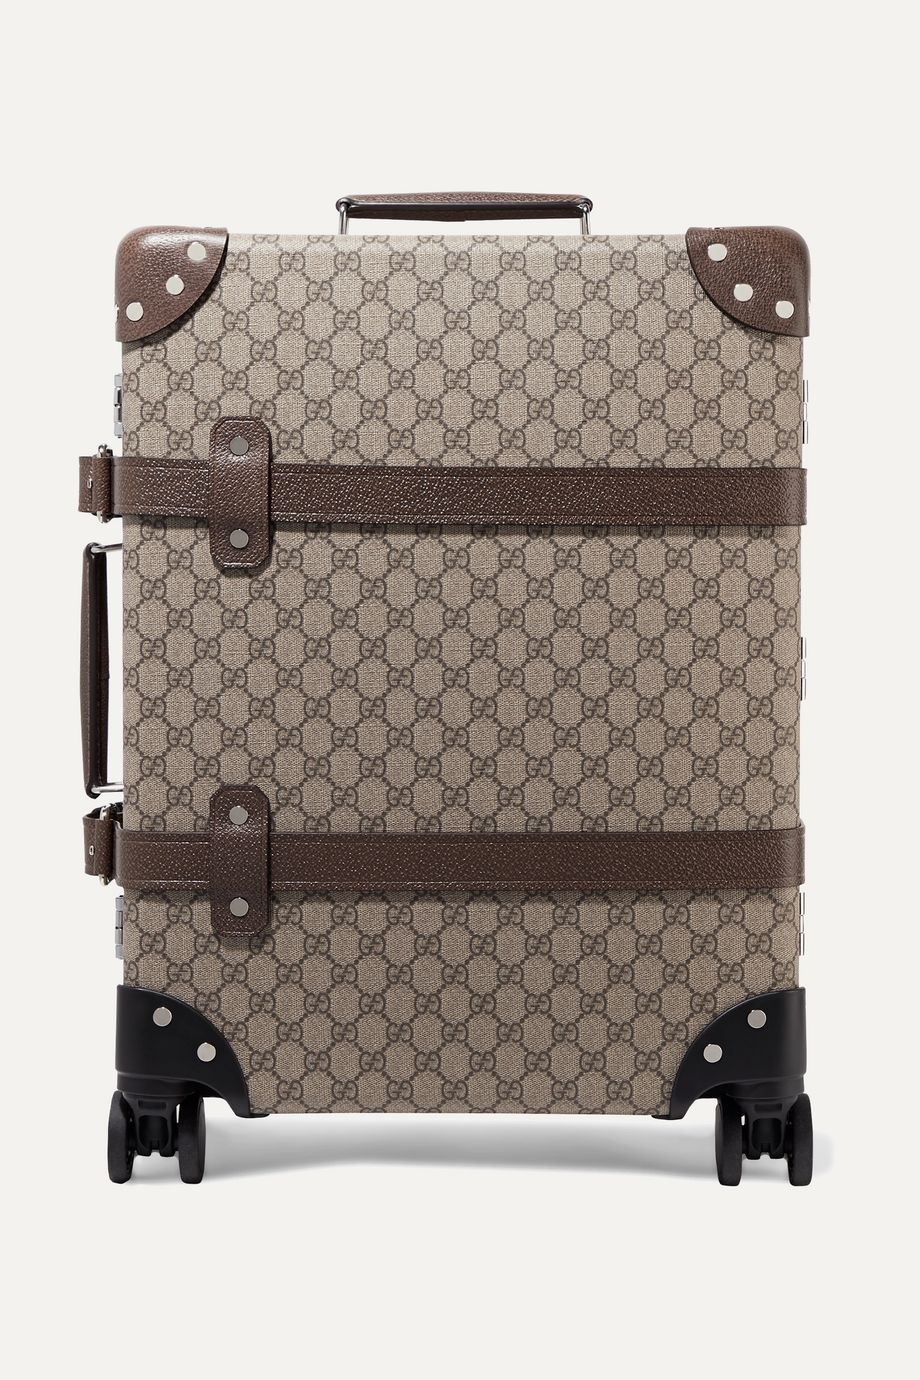 Gucci + Globe-Trotter leather-trimmed printed coated-canvas suitcase